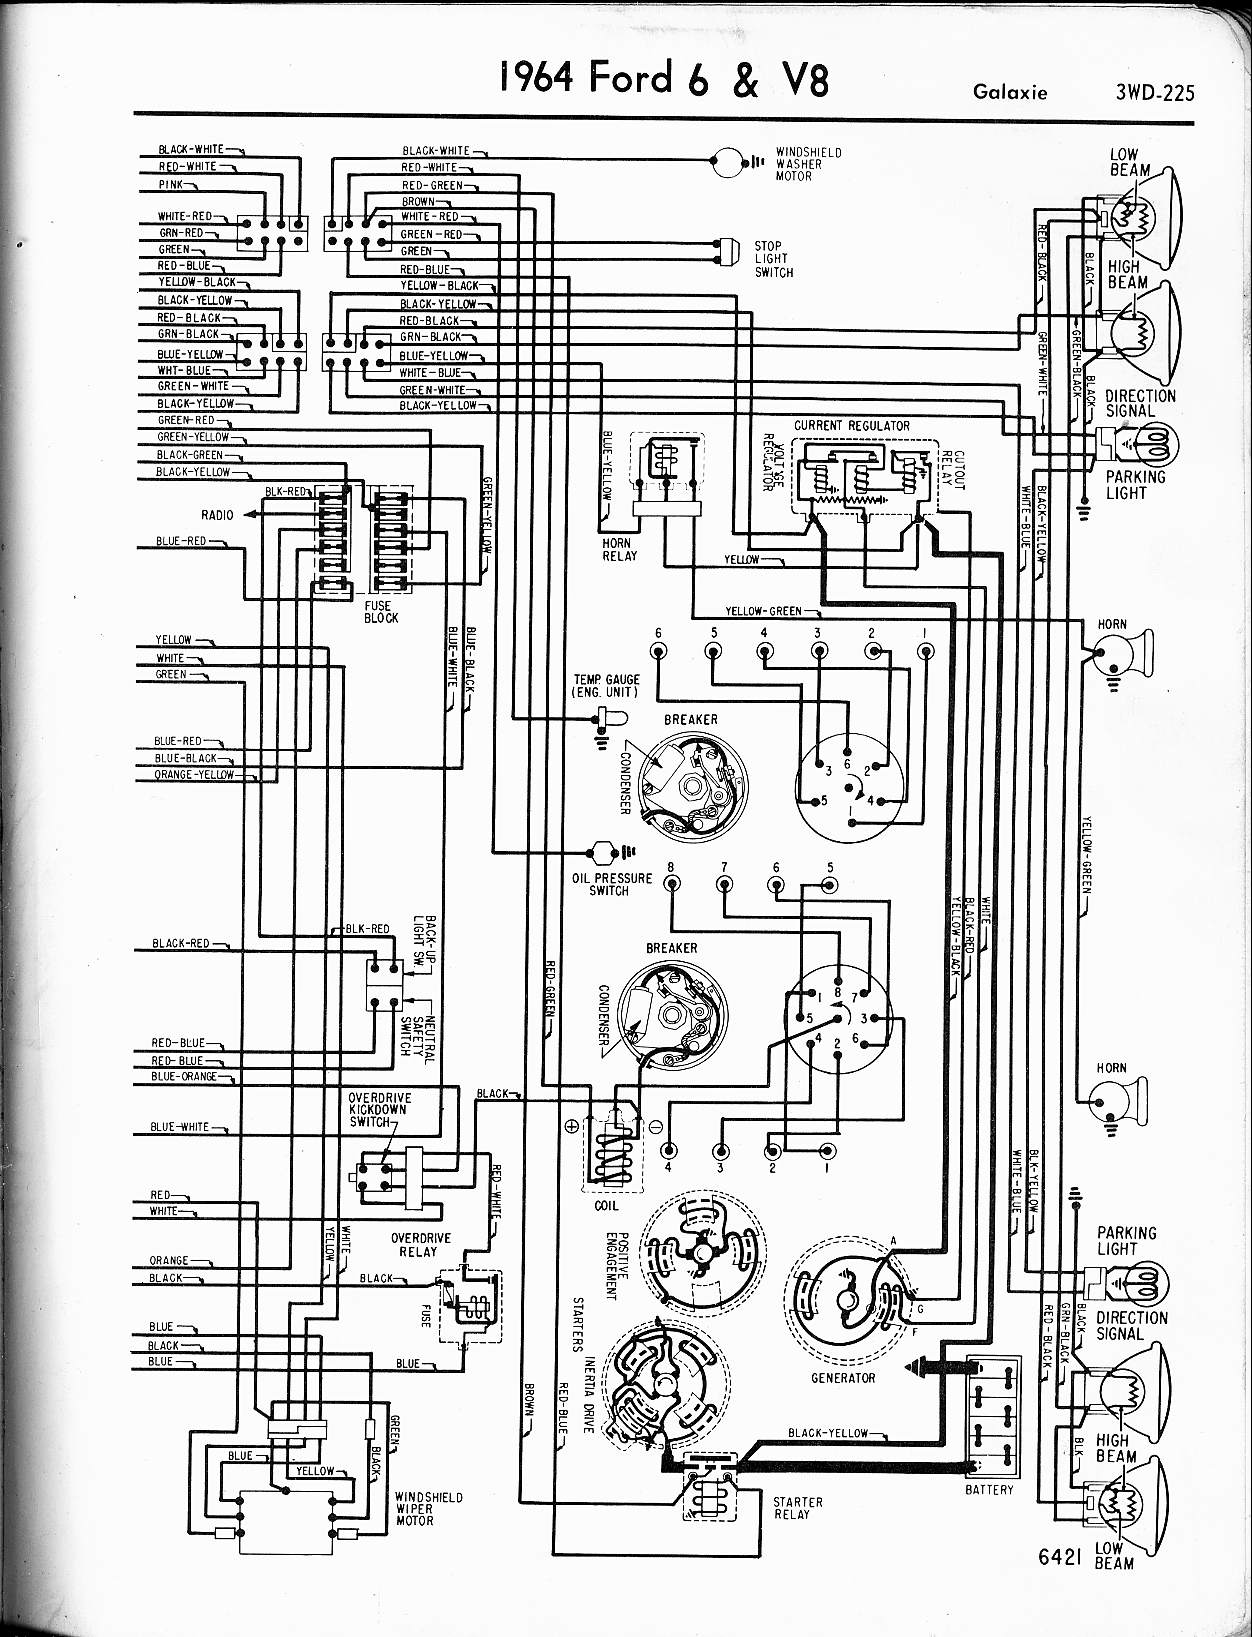 MWire5765 225 wiper motor wiring diagram ford ford motor parts diagram \u2022 free Chevrolet 350 Wiring Diagram at fashall.co